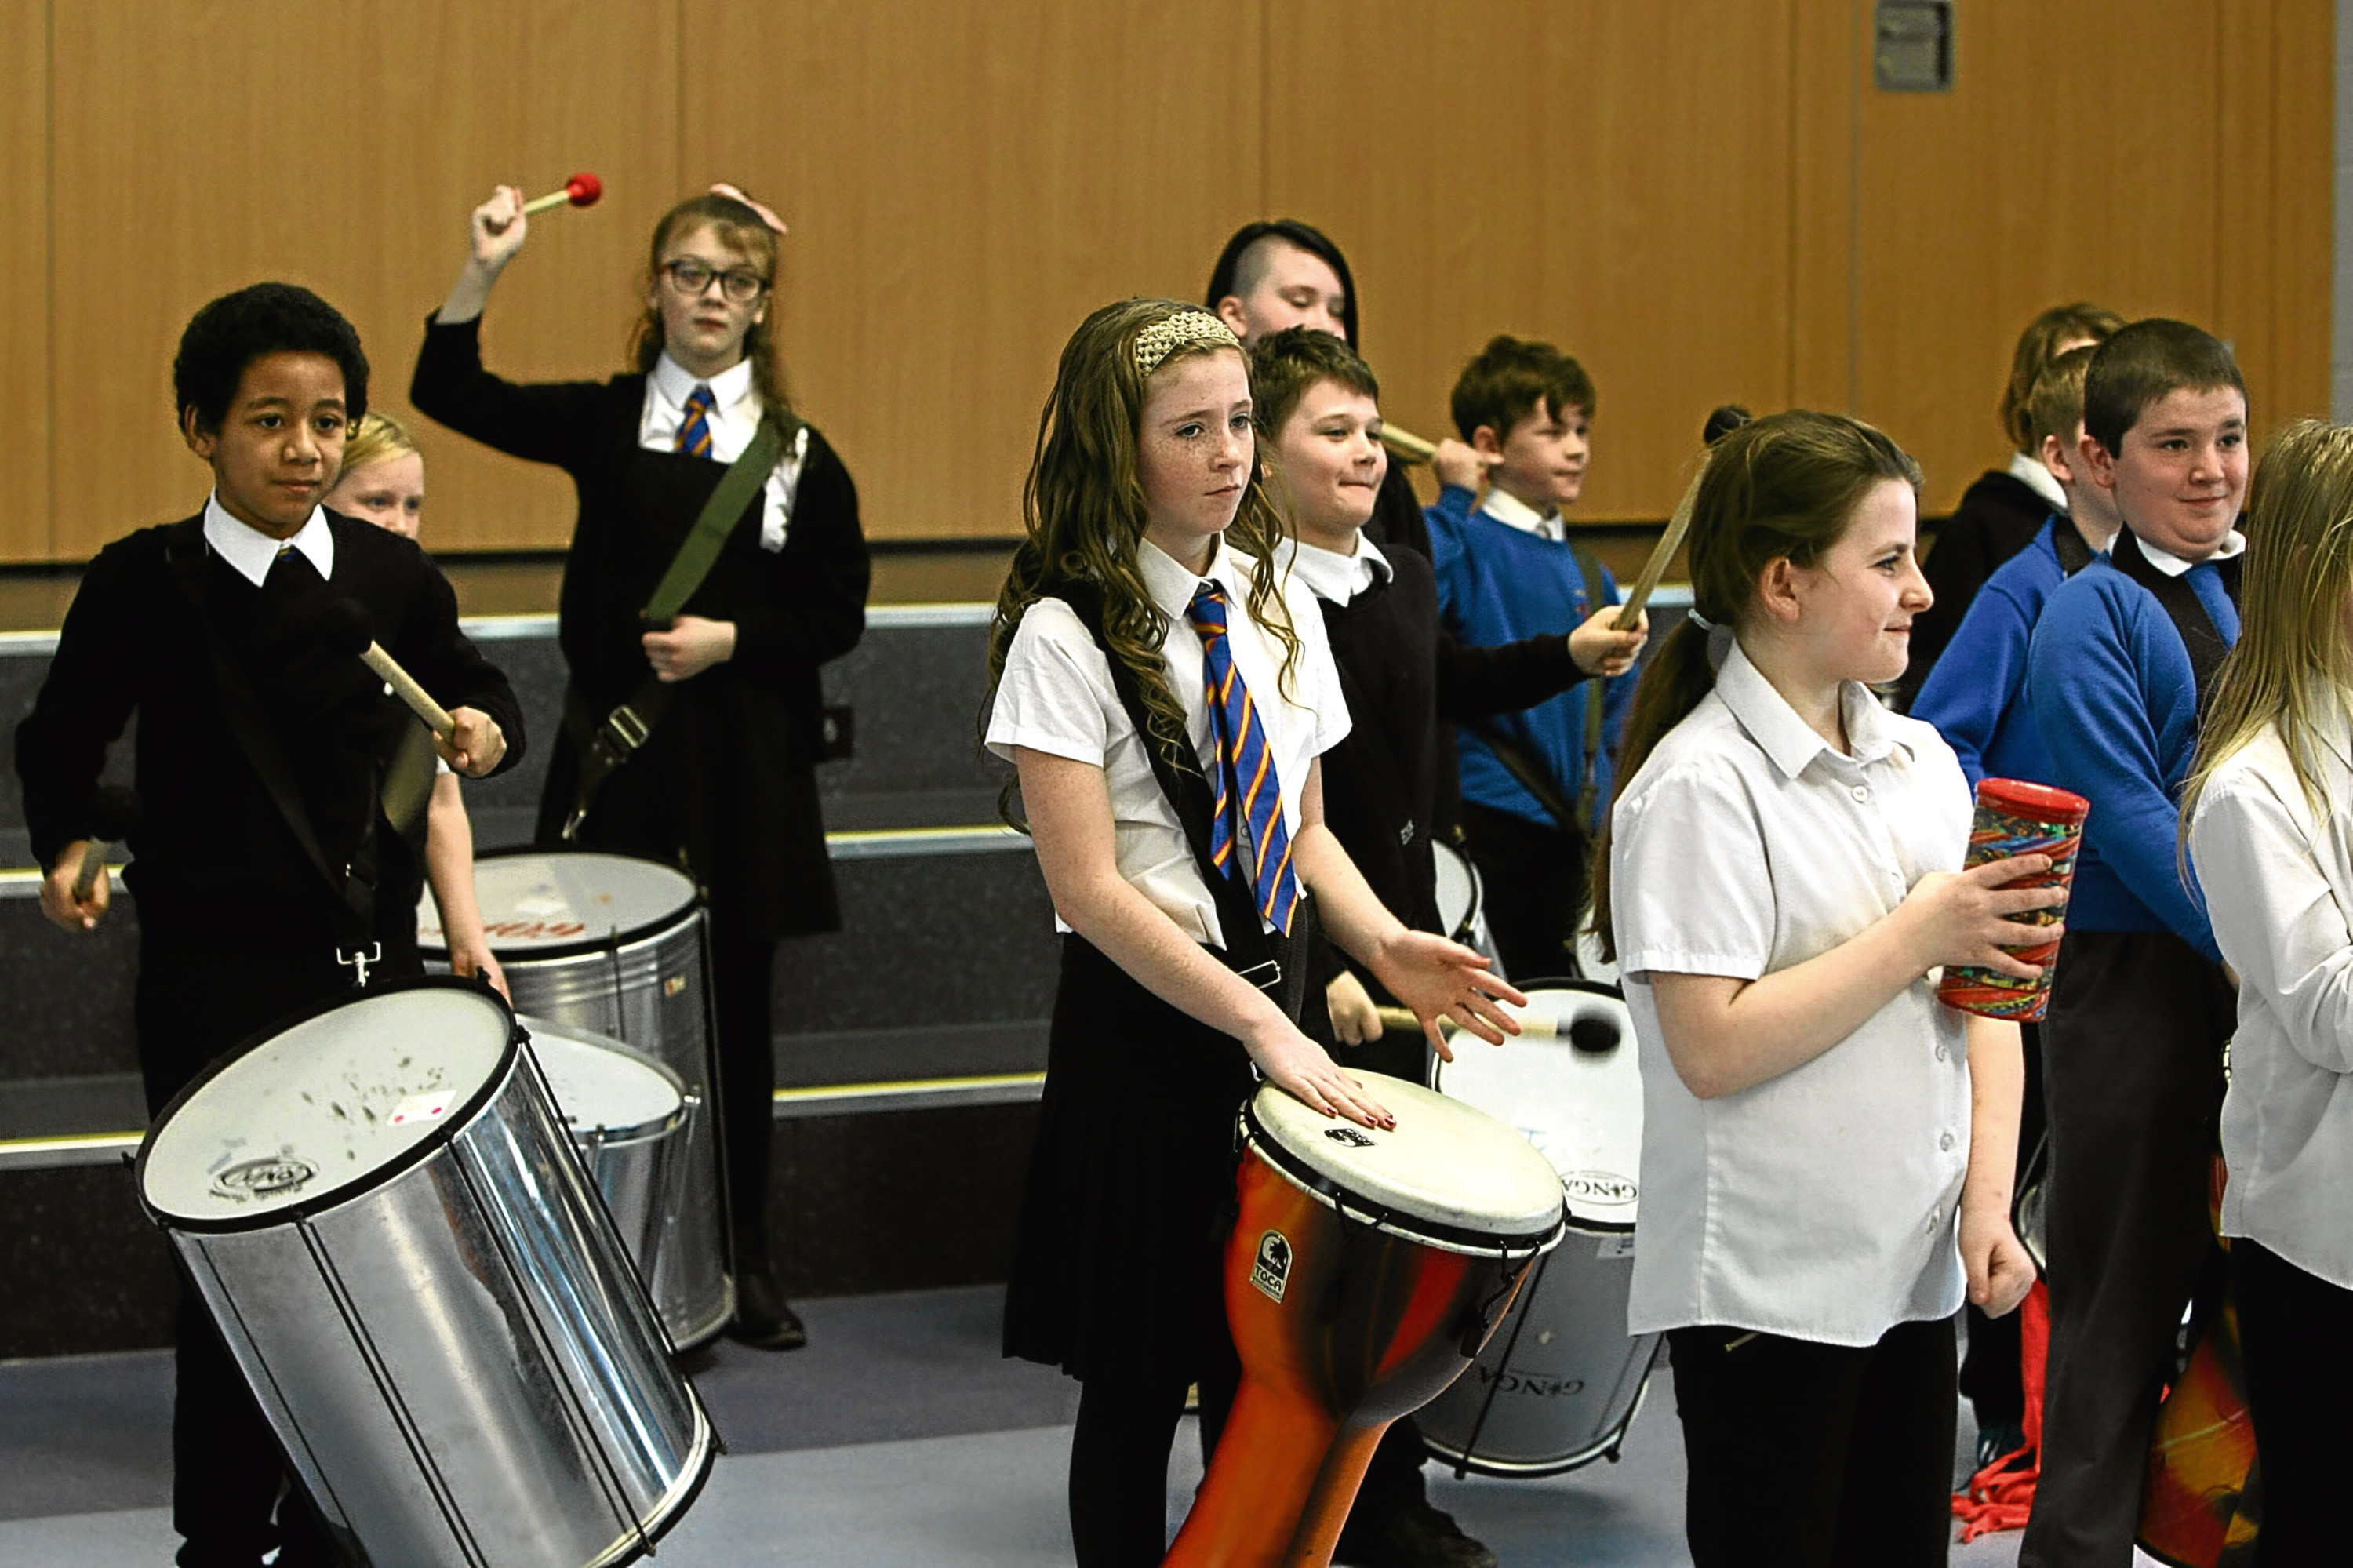 The P6 Samba Band performing at the opening of the new Sidlaw View Primary School yesterday